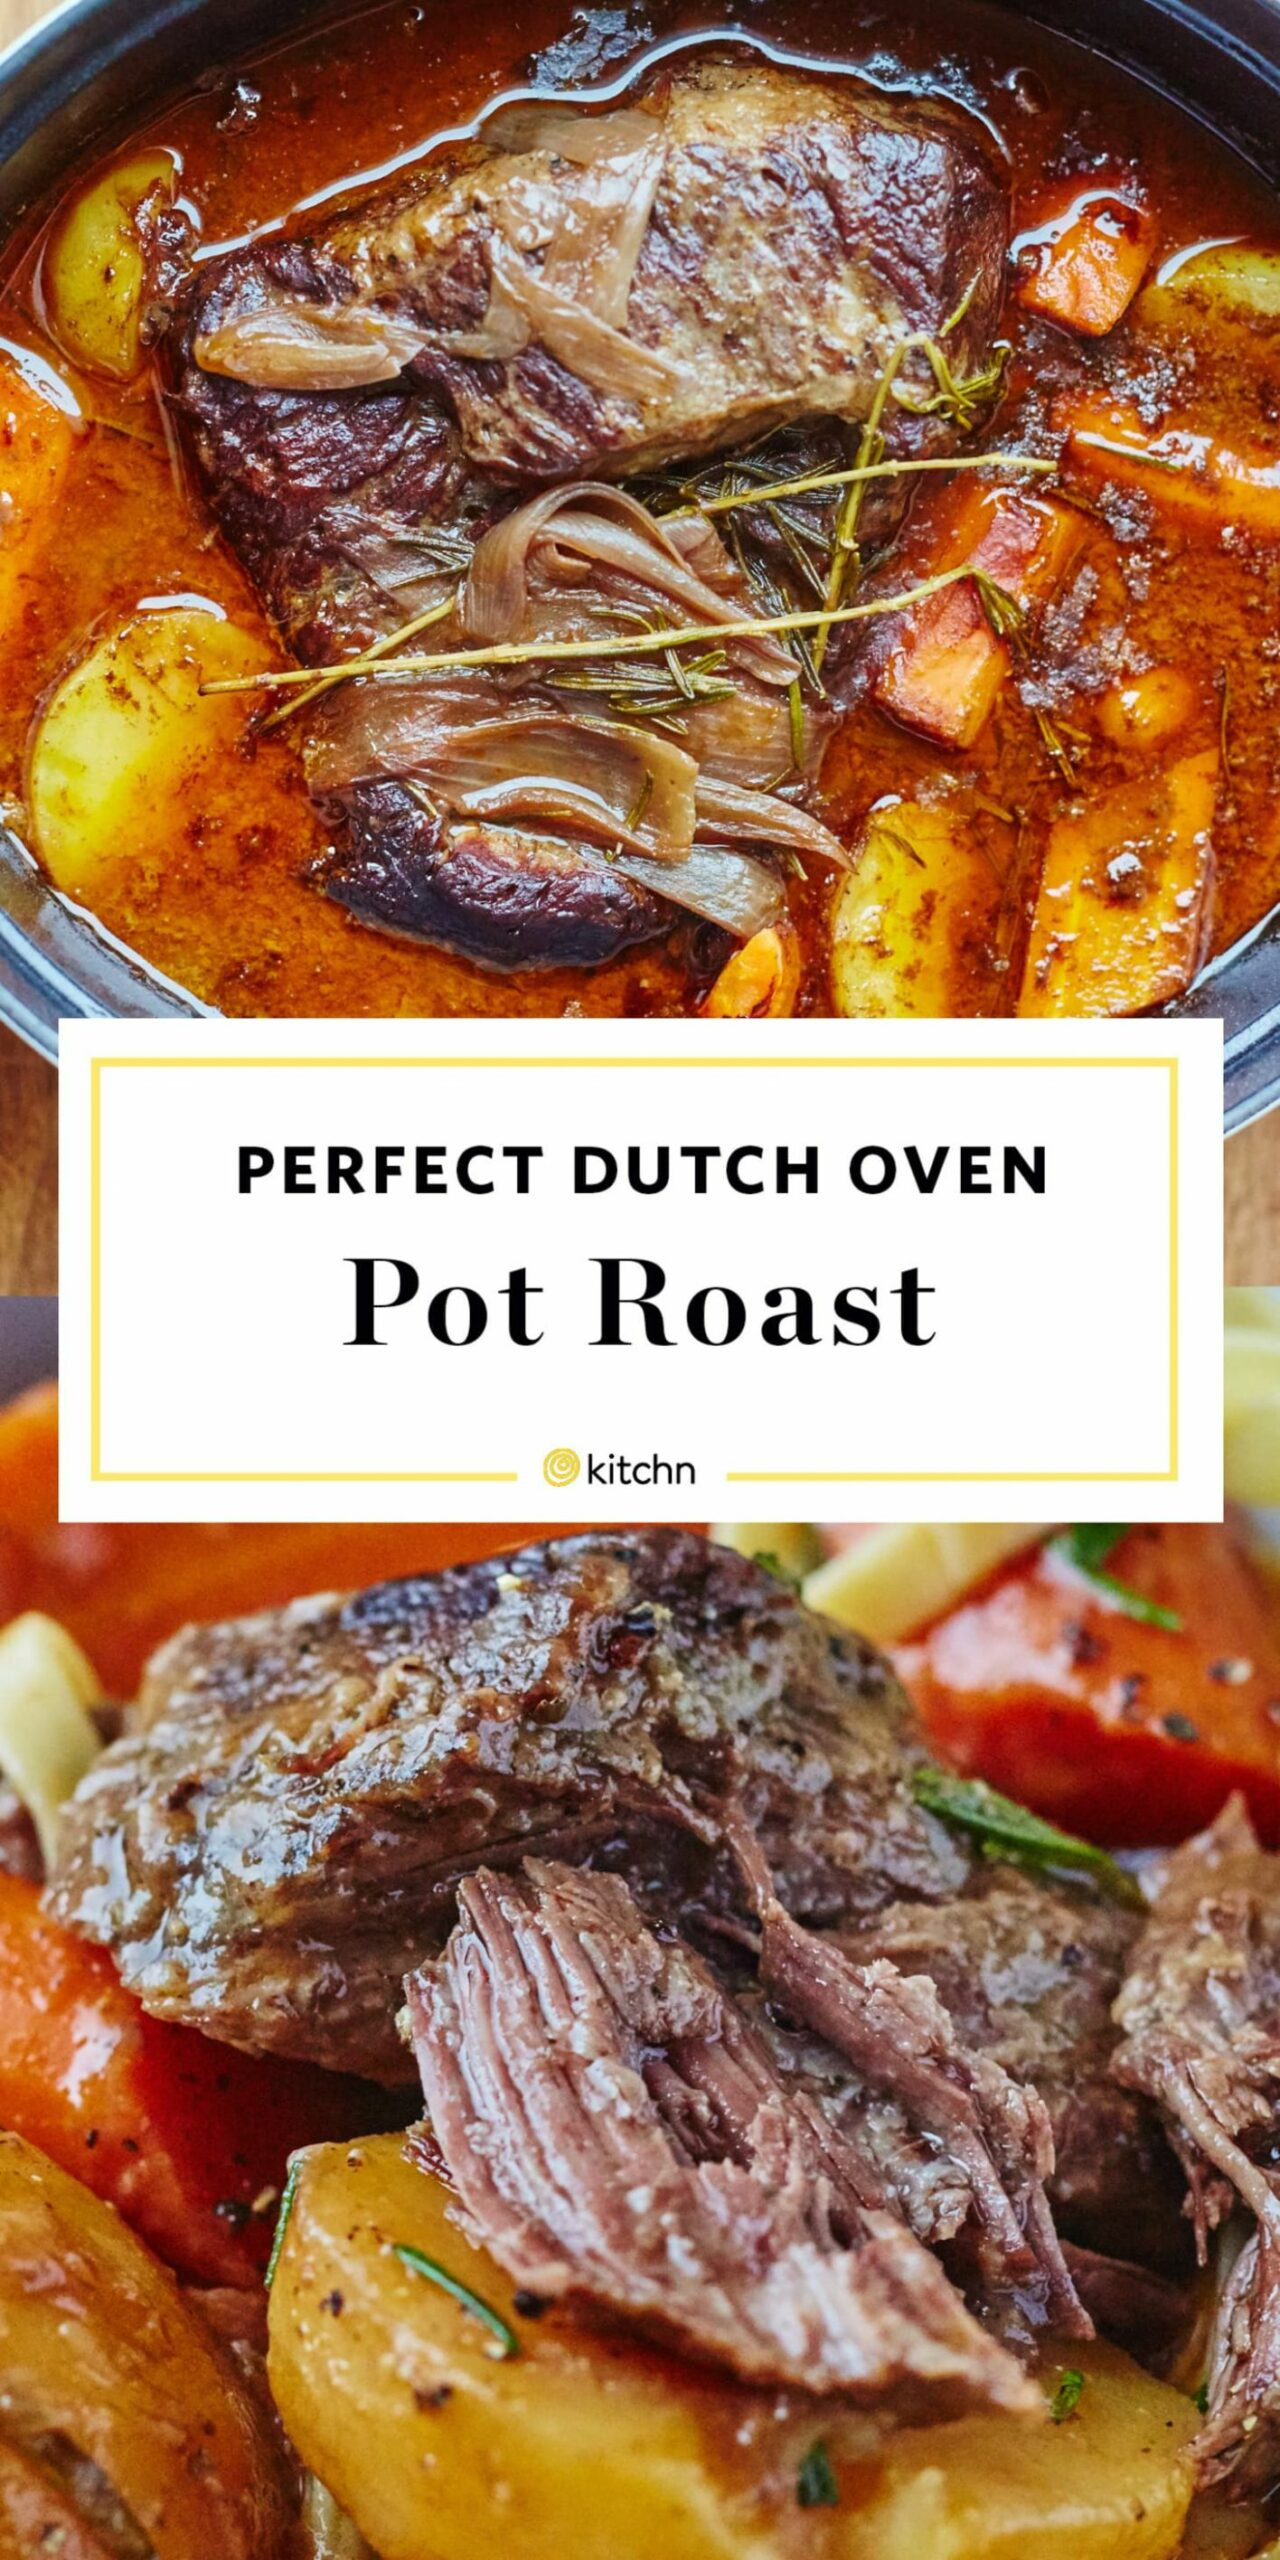 How To Cook Pot Roast - Beef Recipes In Oven